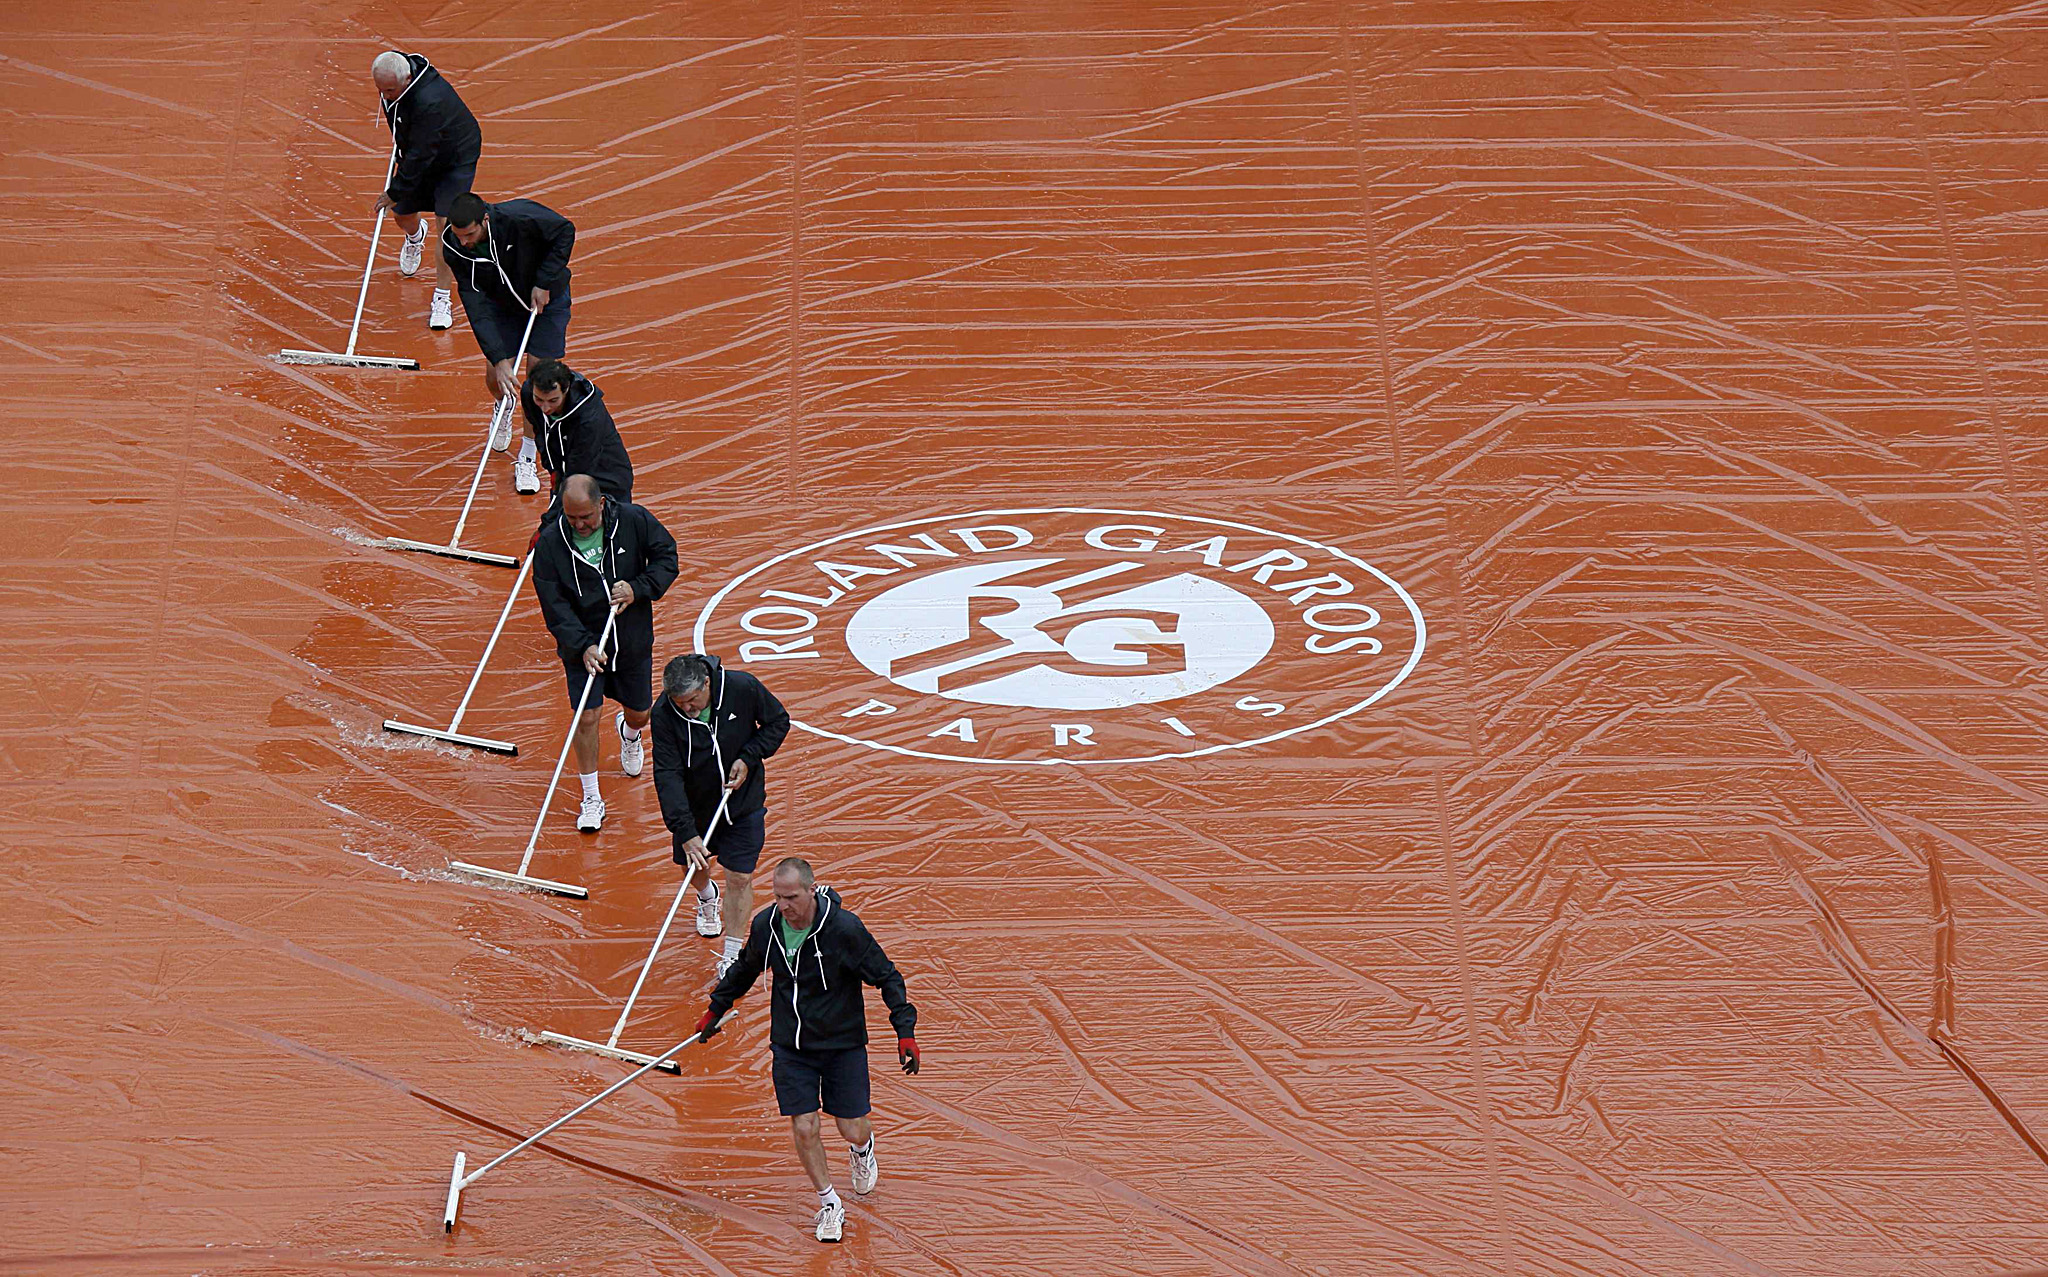 Workers sweep water off a tarp as rain interrupts a men's singles match between Djokovic of Serbia and Sousa of Portugal at the French Open tennis tournament at the Roland Garros stadium in Paris...Workers sweep water off a tarp as rain interrupts a men's singles match between Novak Djokovic of Serbia and Joao Sousa of Portugal at the French Open tennis tournament at the Roland Garros stadium in Paris May 26, 2014.     REUTERS/Gonzalo Fuentes